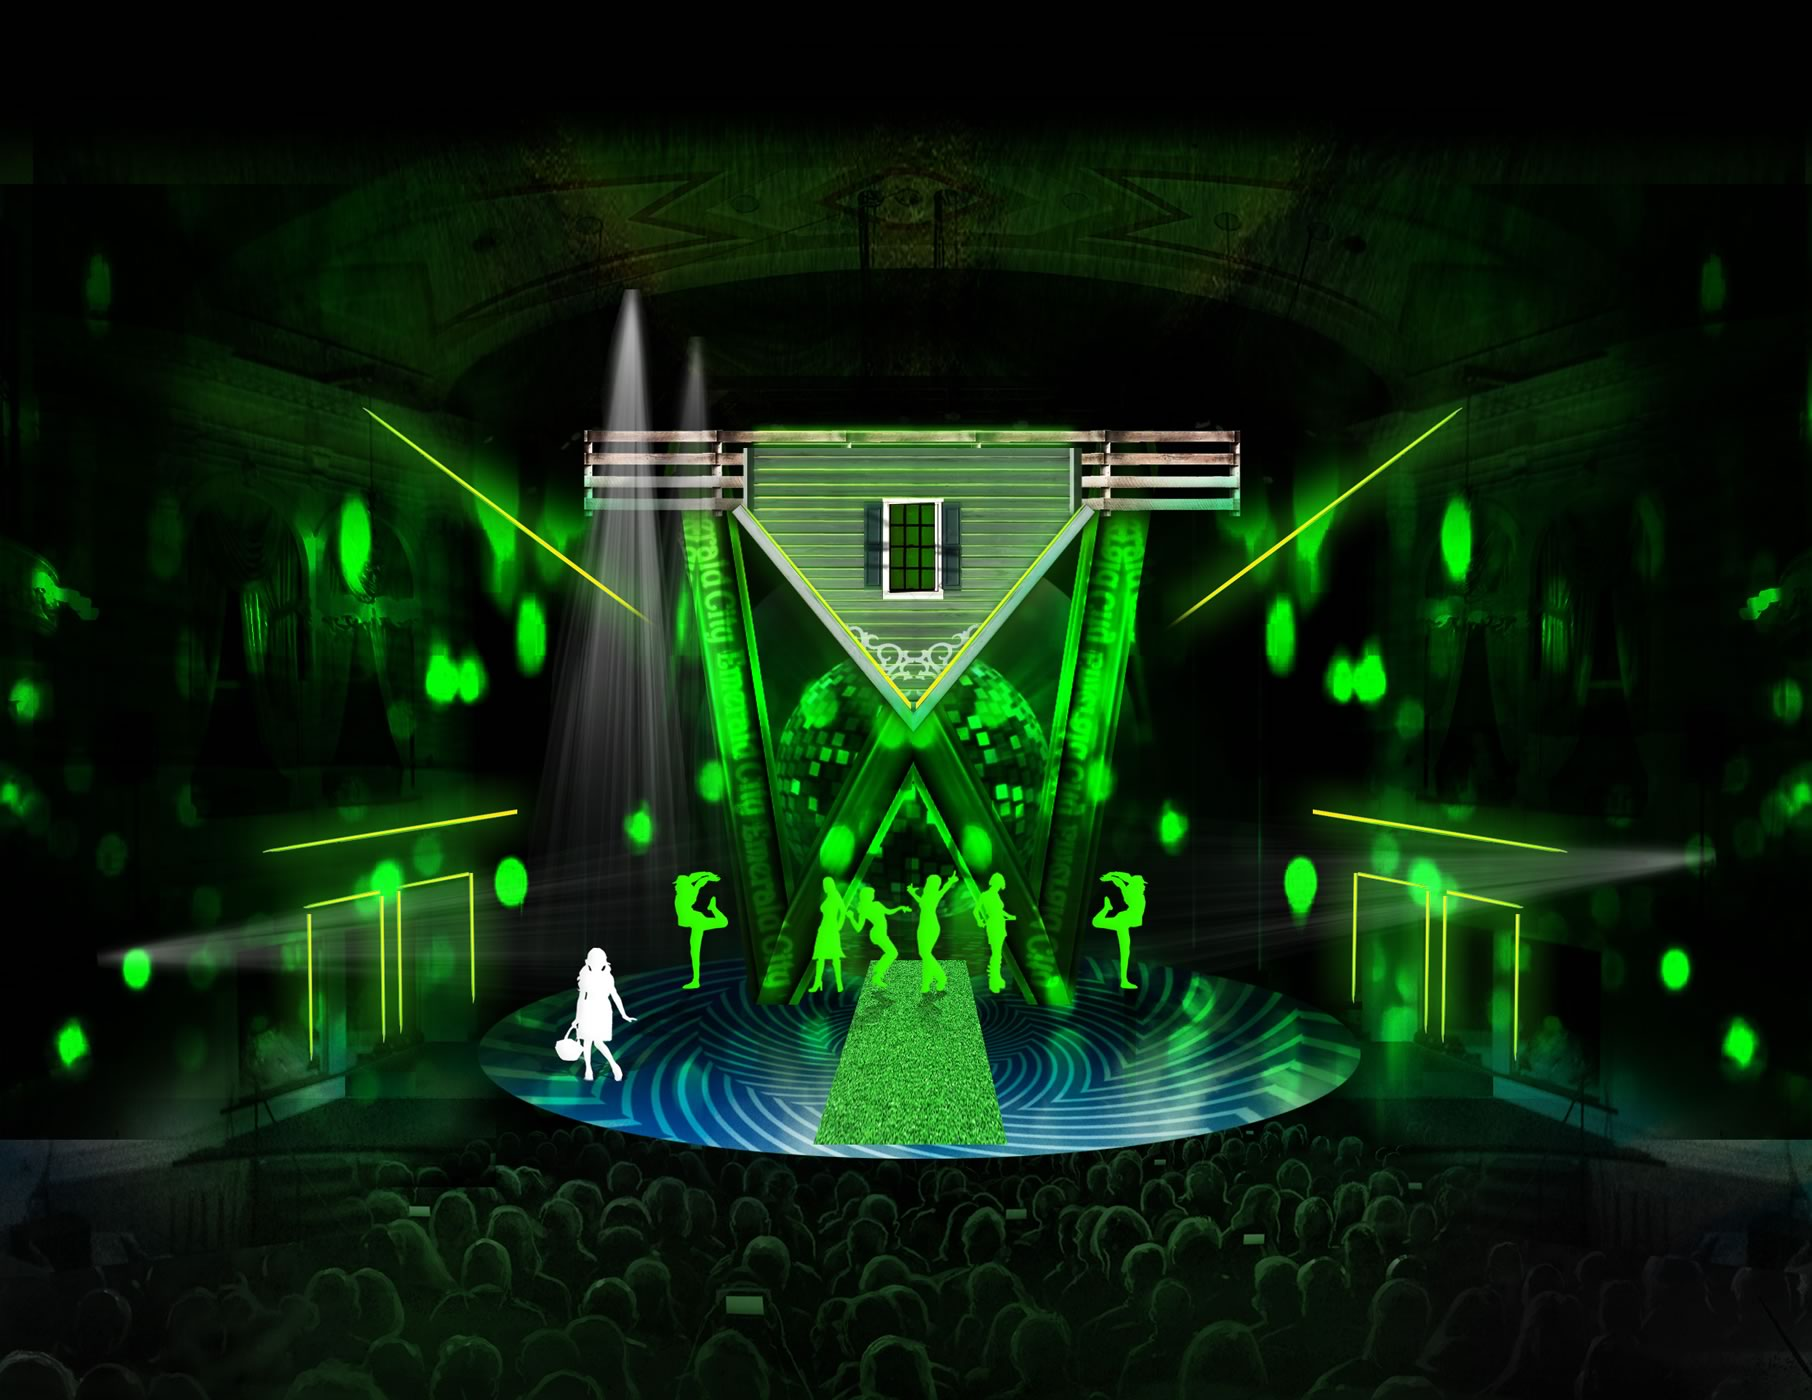 set design for The Wiz in the Emerald City scene includes dramatic kelly-green lighting in directed beams all over the stage, an inverted house with peaked roof floating above the stage.